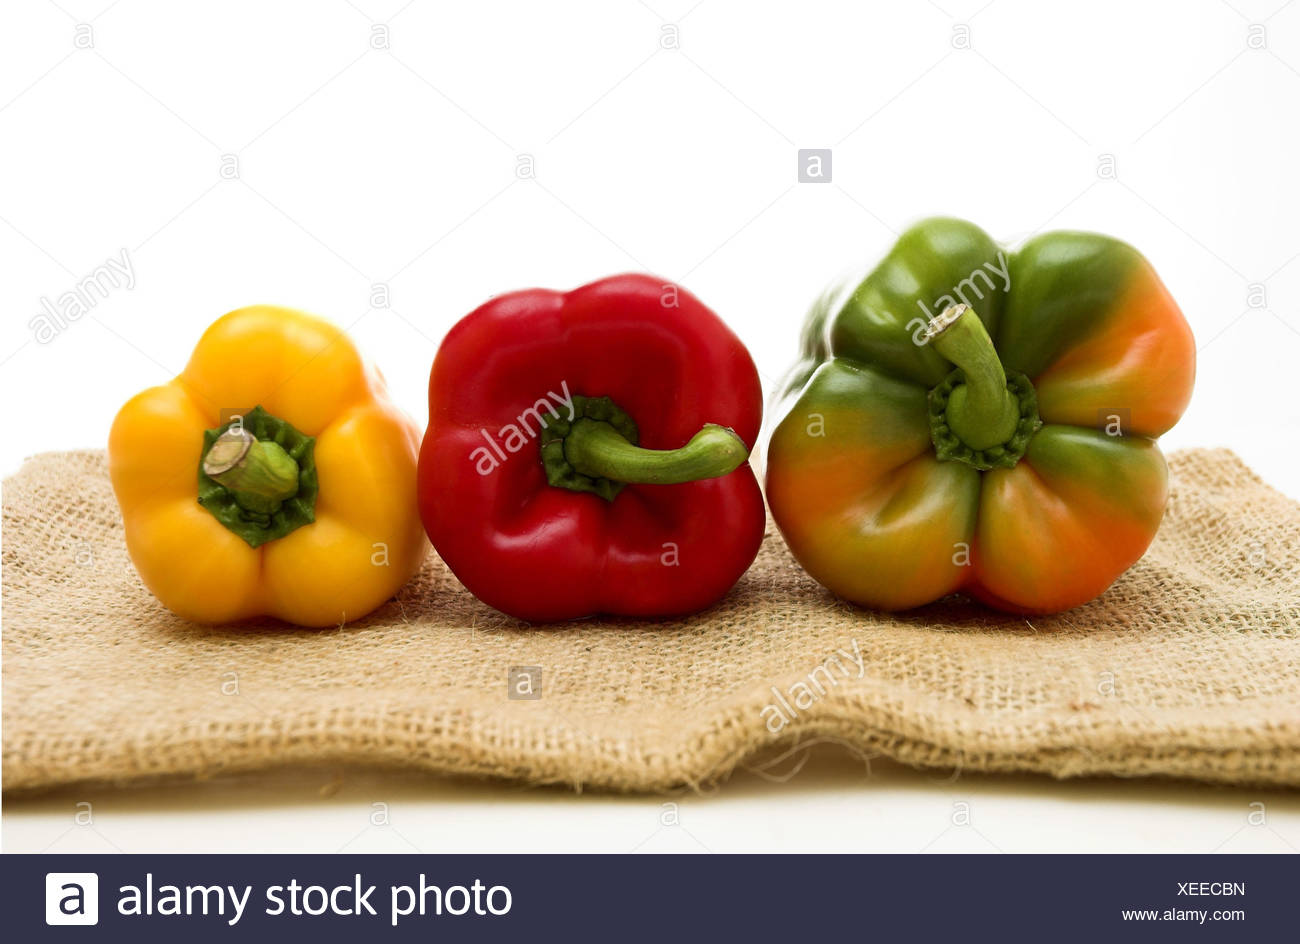 Paprika, peppers, three, vegetables, rich in vitamins, healthy, paprika sorts, brightly, different, freshly, food, eat, choice, three, jute, jute pouch, studio, vitamins, raw vegetarian food, - Stock Image